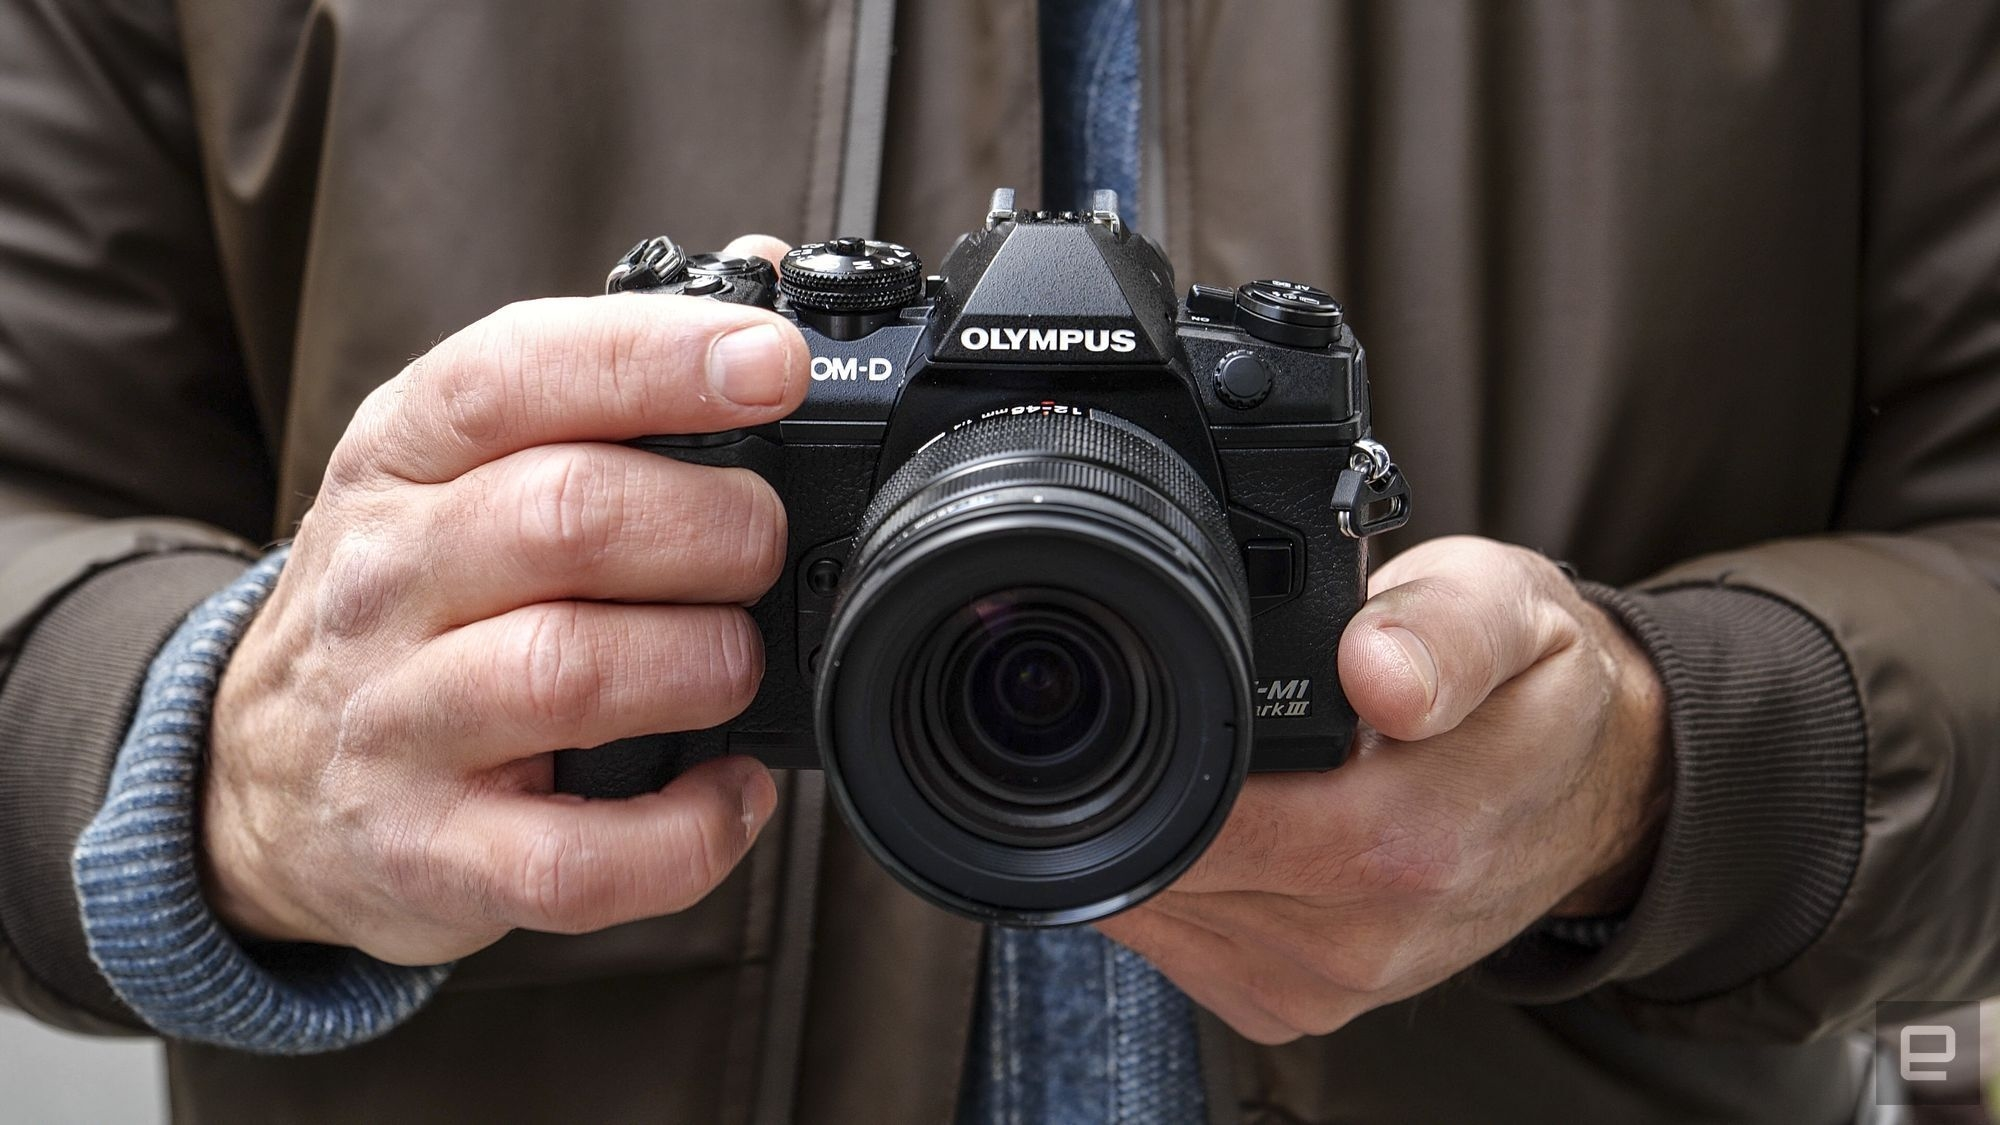 Olympus E-M1 III review: Fast, but way behind flagship camera rivals   DeviceDaily.com